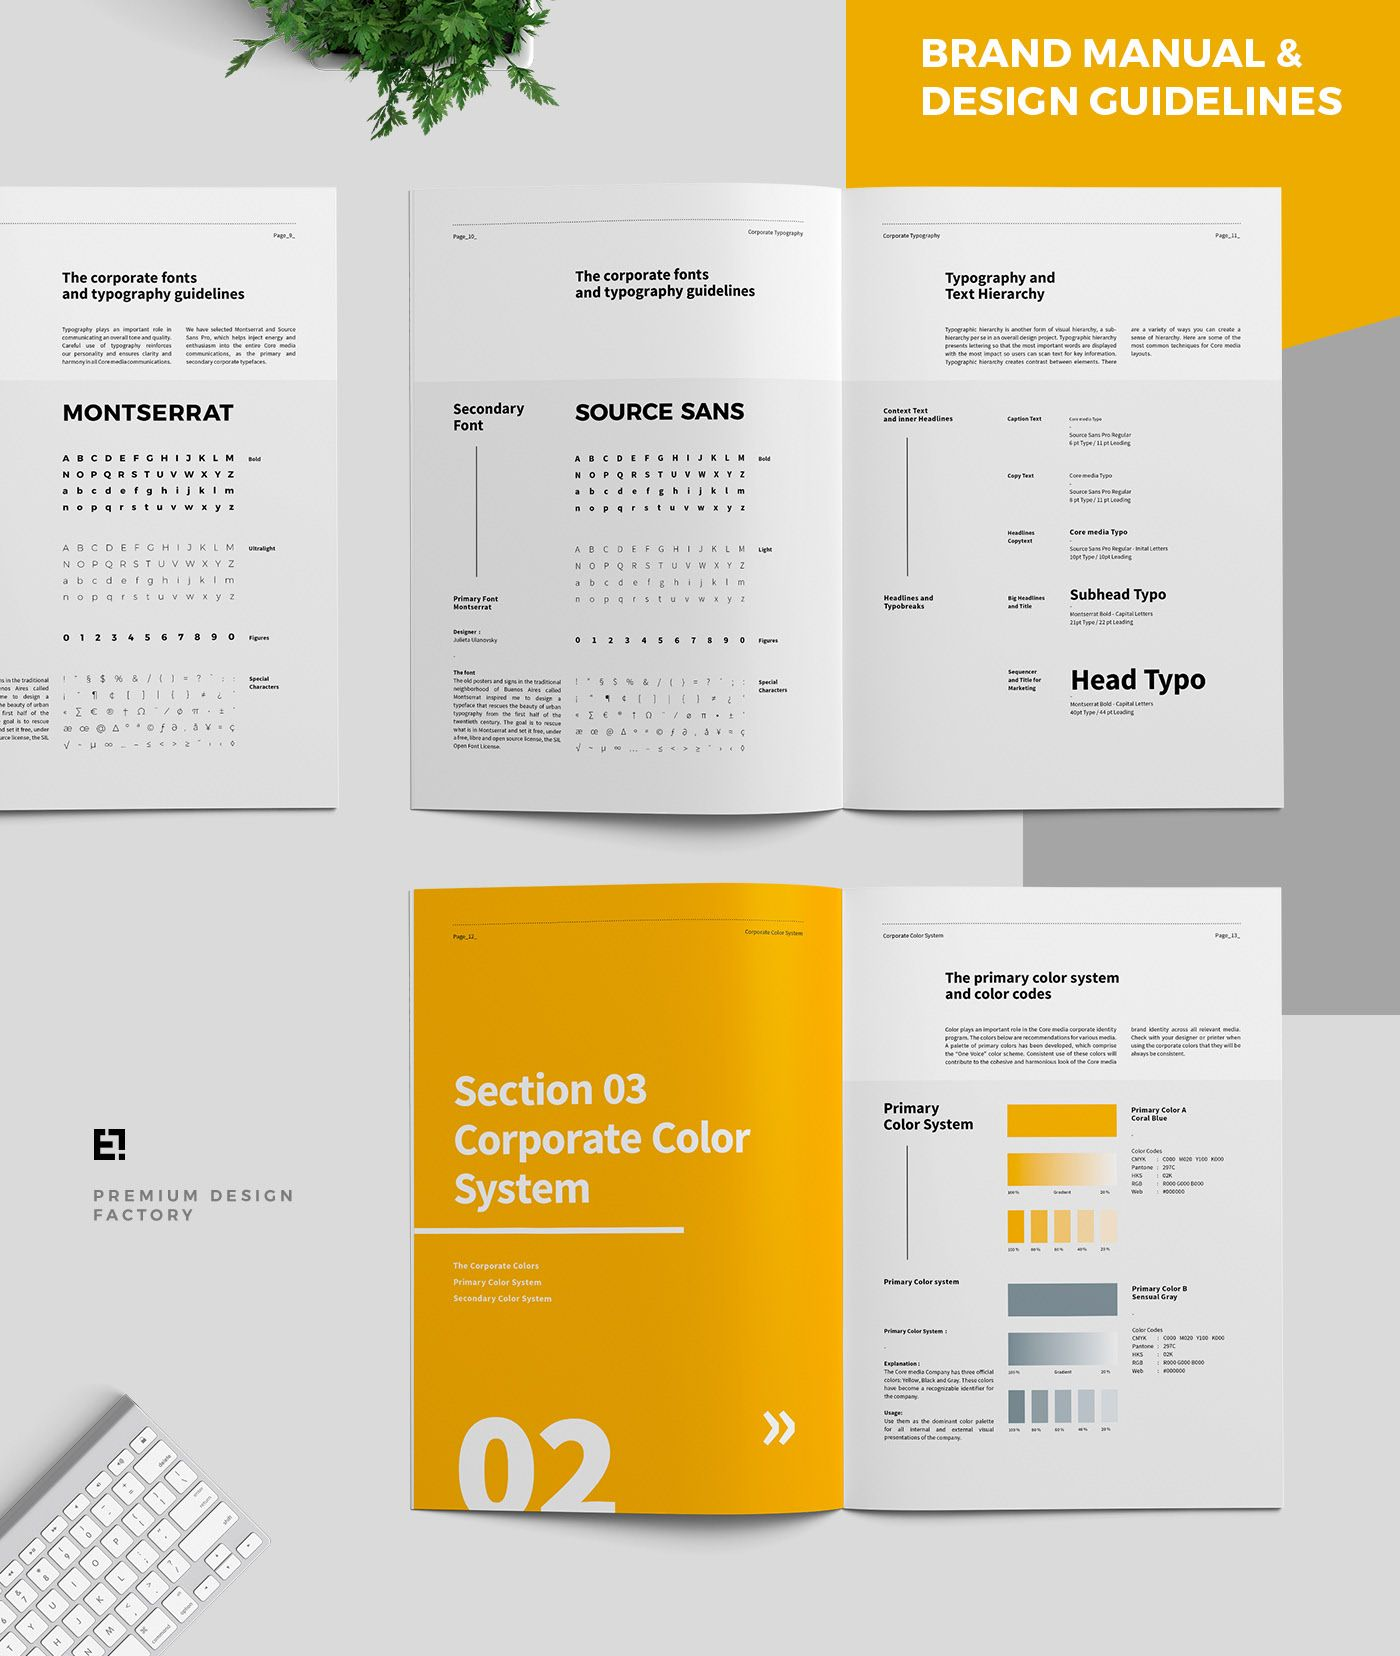 Core Brand Manual & Guidelines